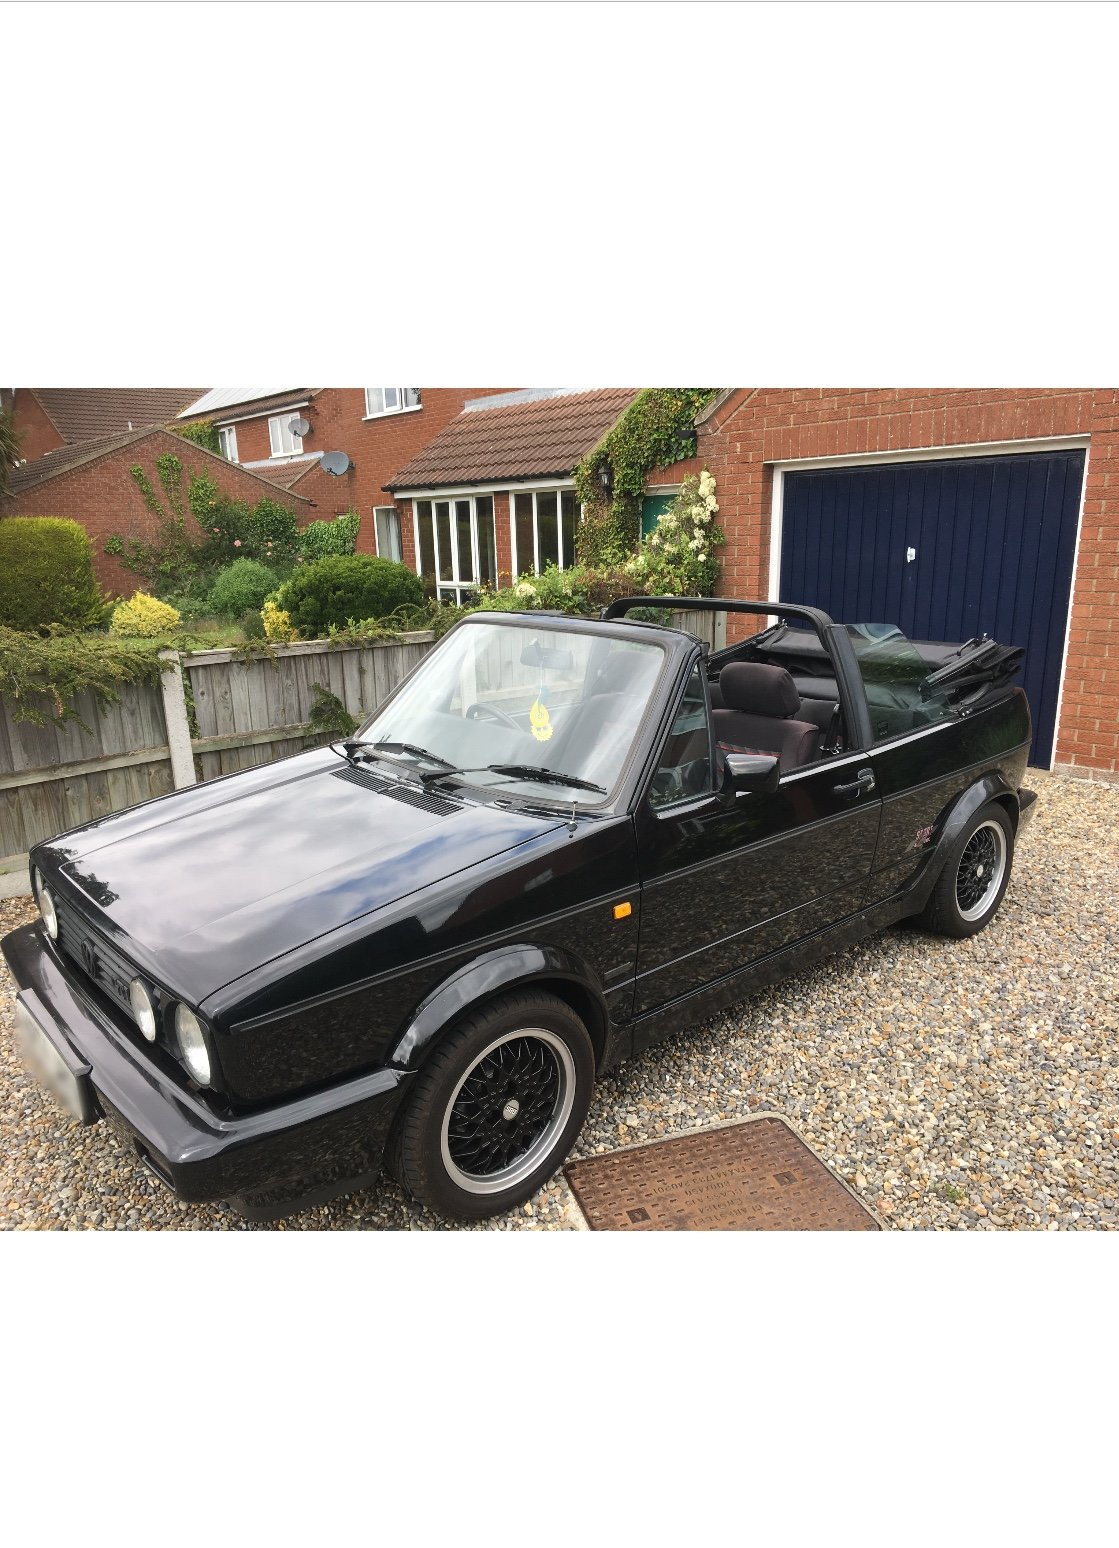 1991 VW GOLF GTI SPORTLINE  For Sale (picture 1 of 6)